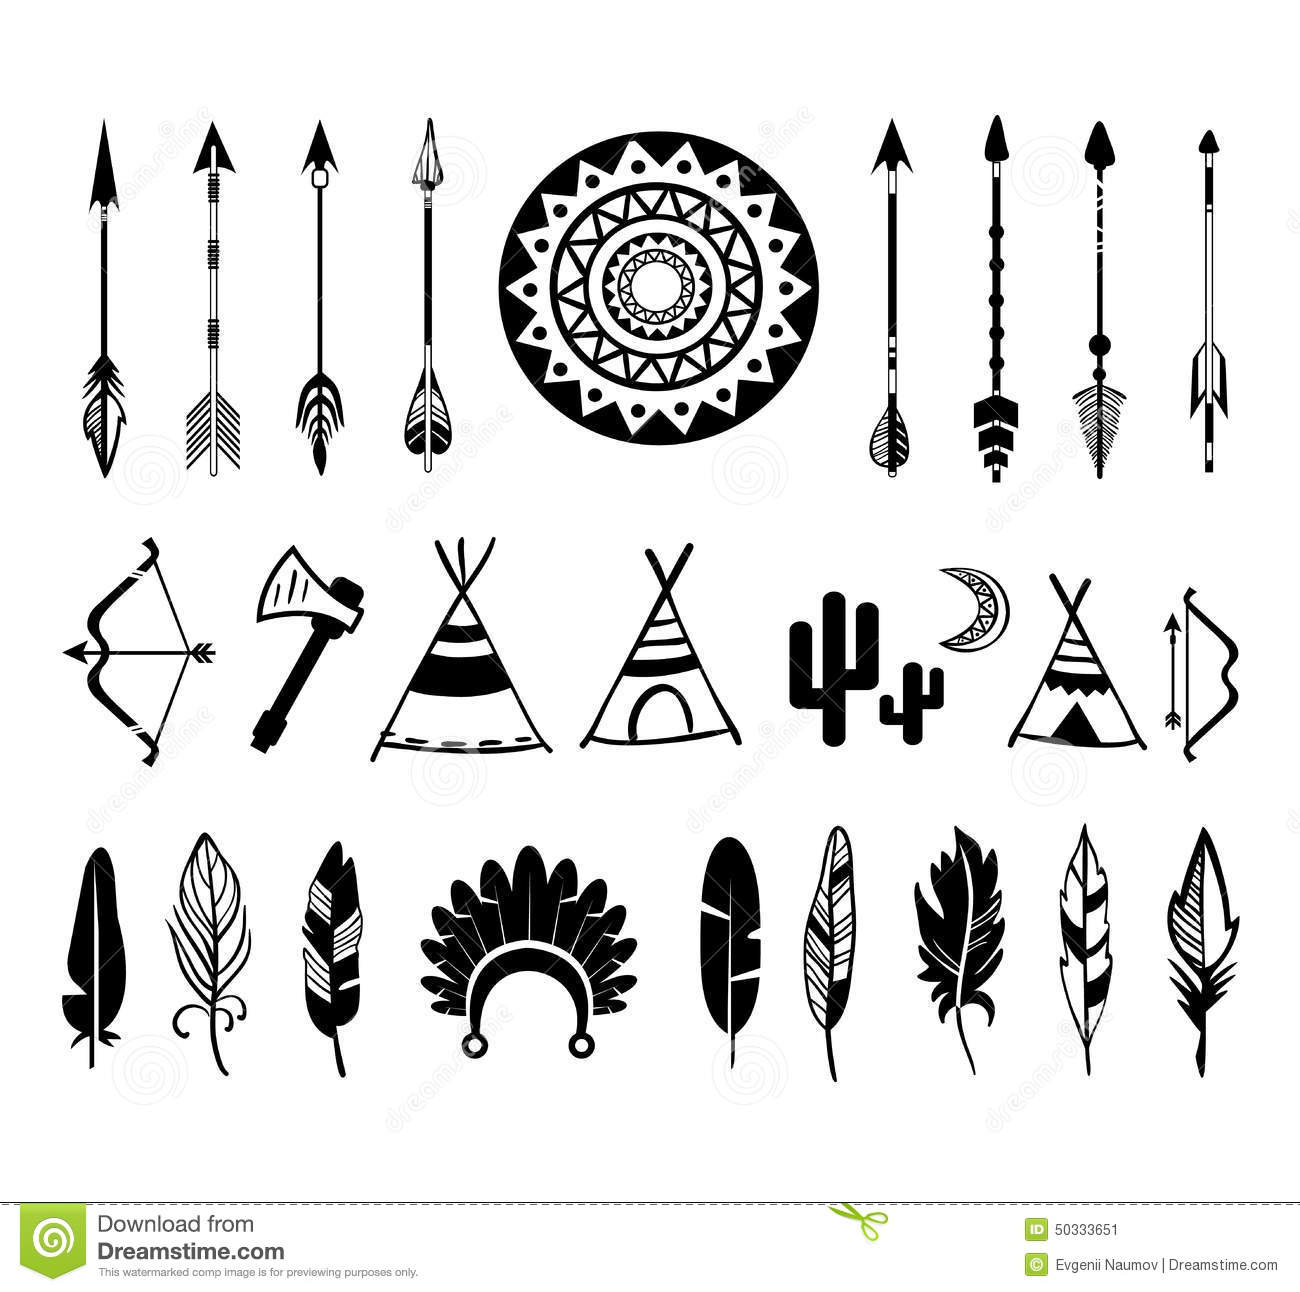 Vector Silhouettes Of The Bow And Arrow Stock Vector - Image: 50333651